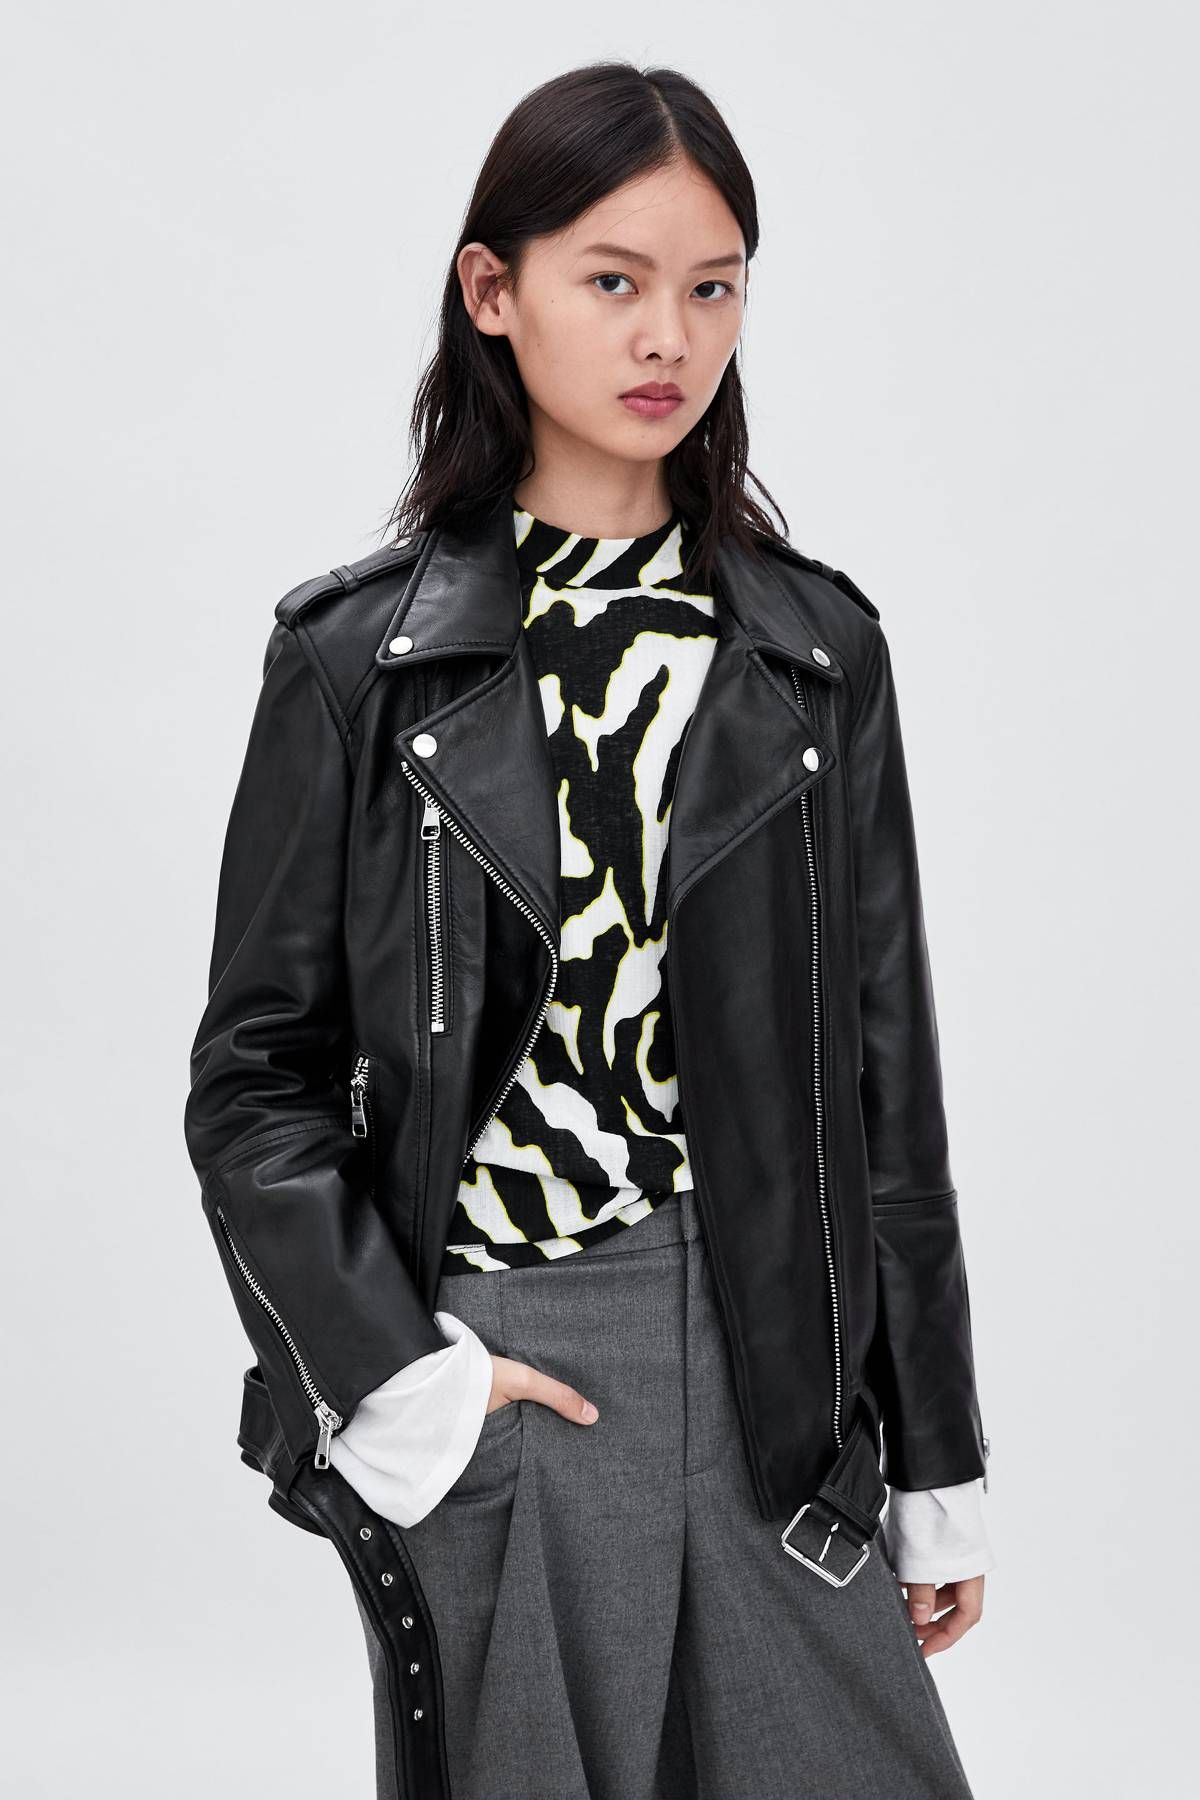 20 Zara Items I Know Will Still Be Cool In 2020 Leather Jacket Outfits Leather Bomber Jacket Women Zara Leather Jacket [ 1800 x 1200 Pixel ]